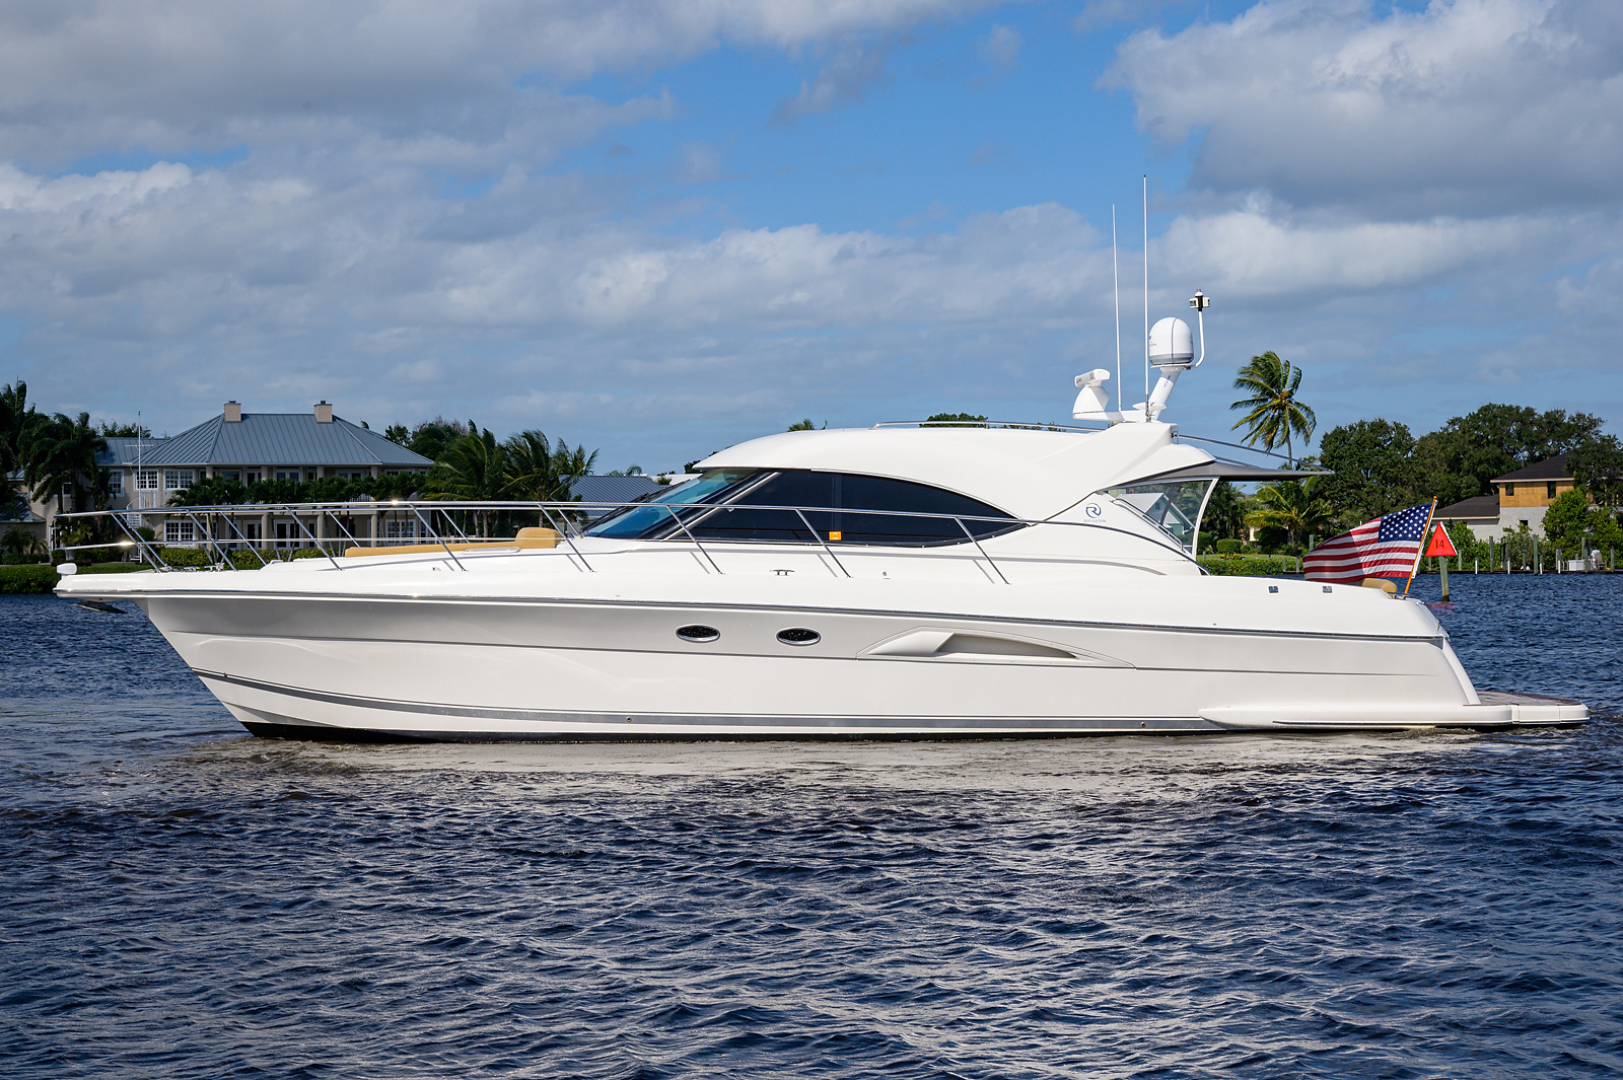 Riviera-5000 Sport Yacht 2012-Lady J Palm Beach-Florida-United States-1553487 | Thumbnail